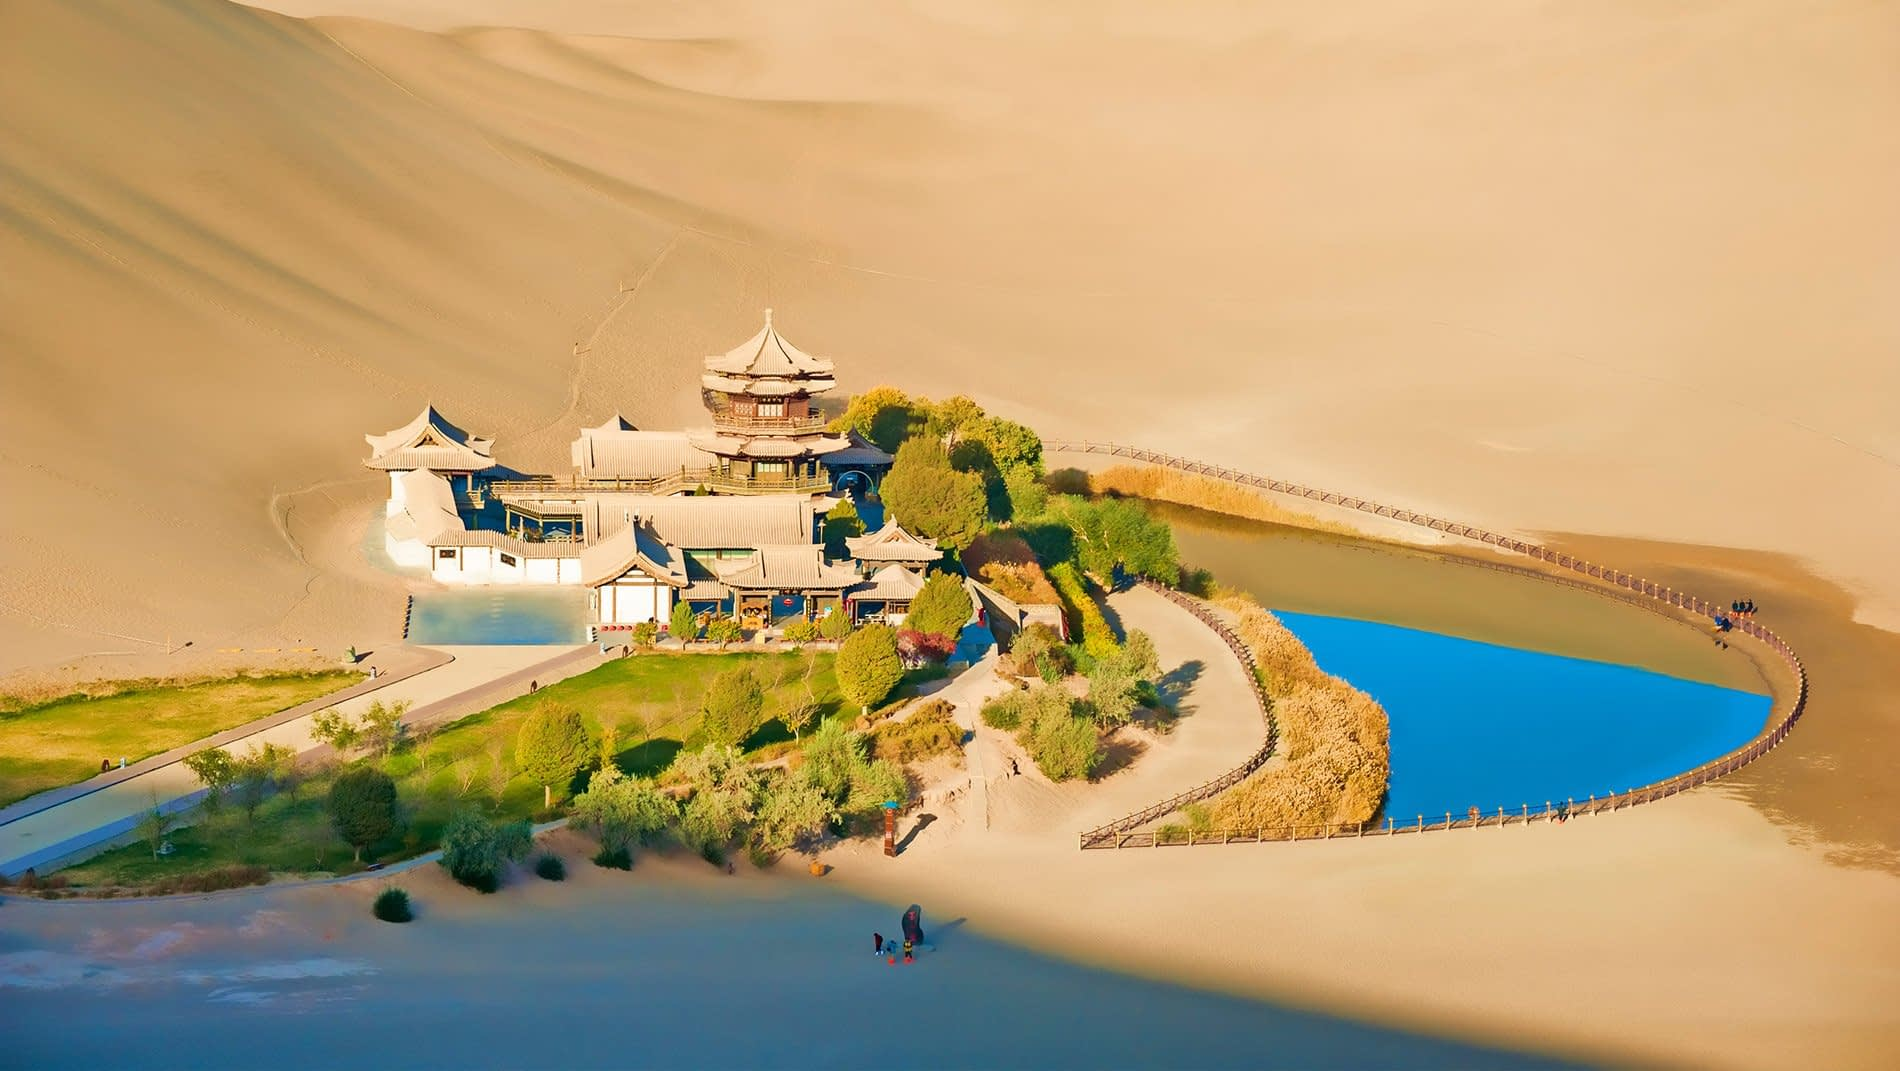 Mingsha Sand Dune~Daoists believed this crescent lake in the midst of sand dunes had unique properties.